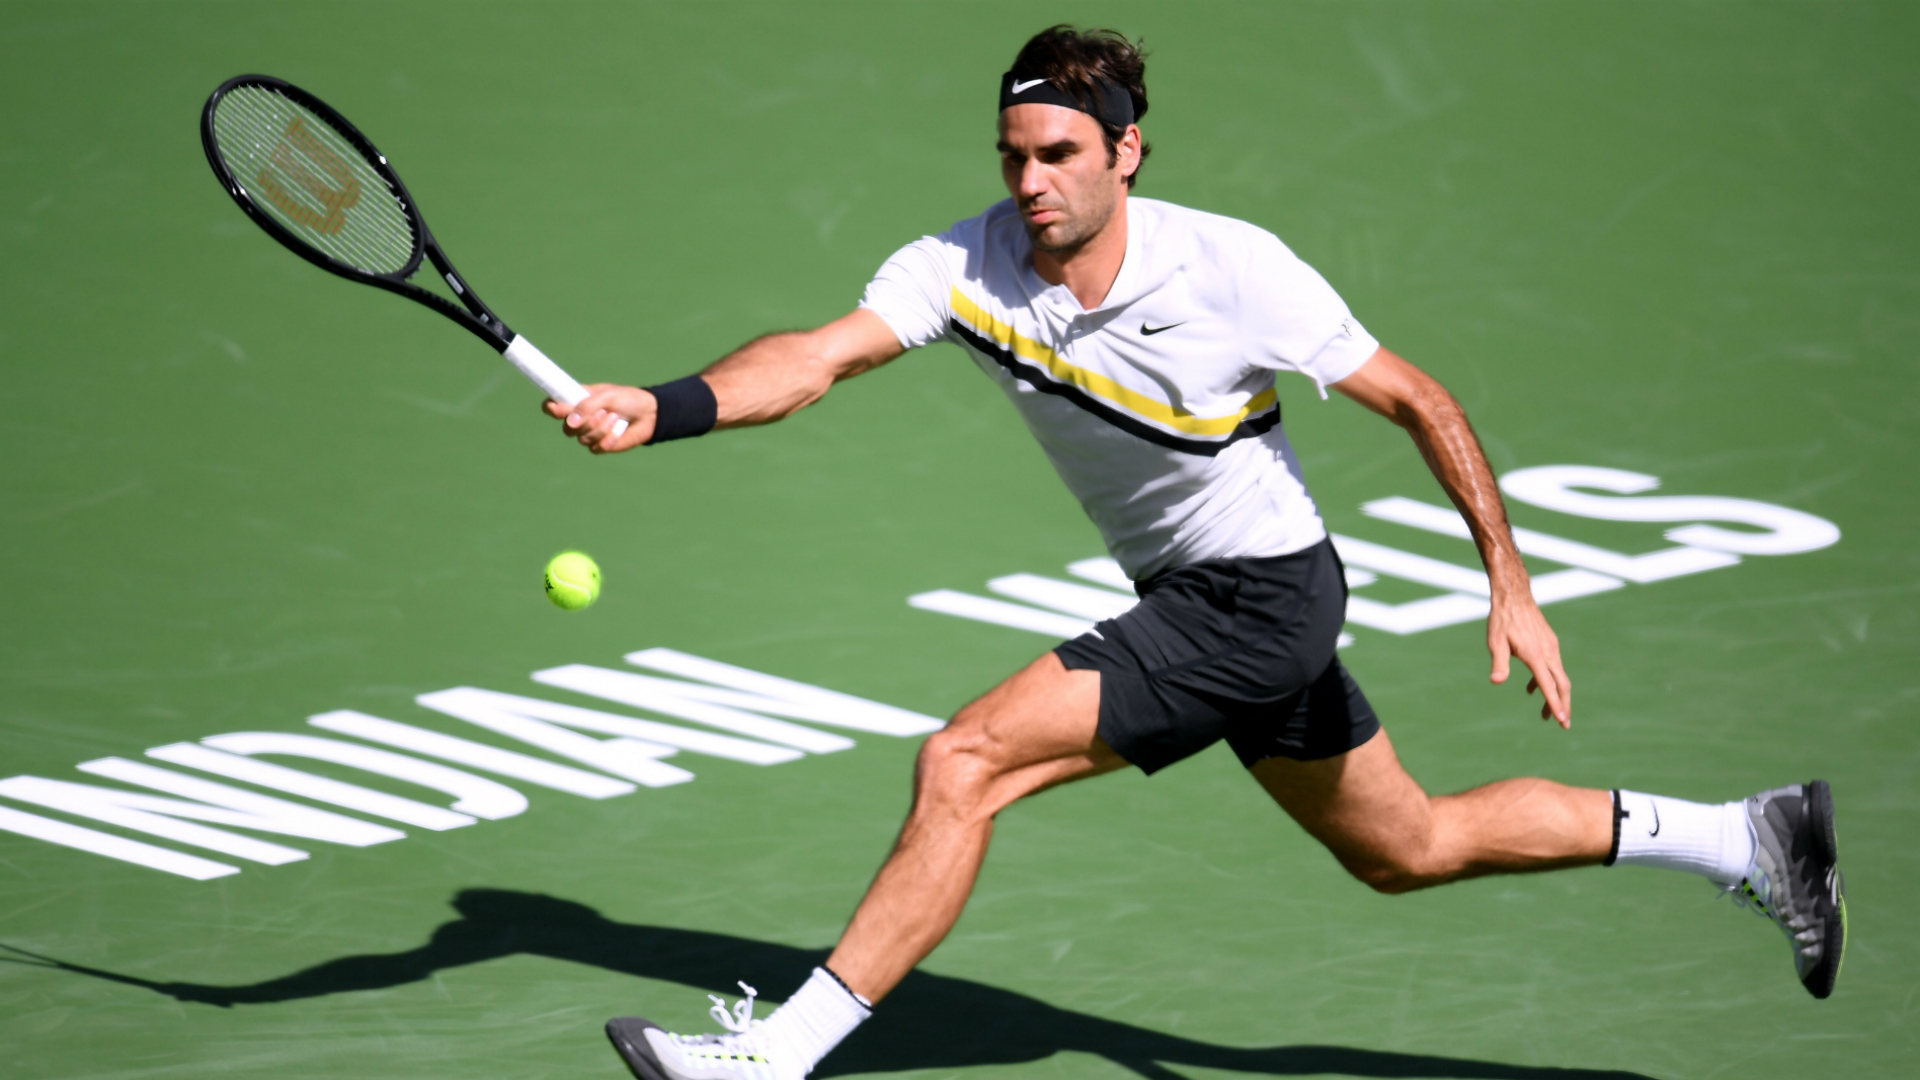 Indian Wells: Roger Federer leads Delbonis but rain spoiled the party